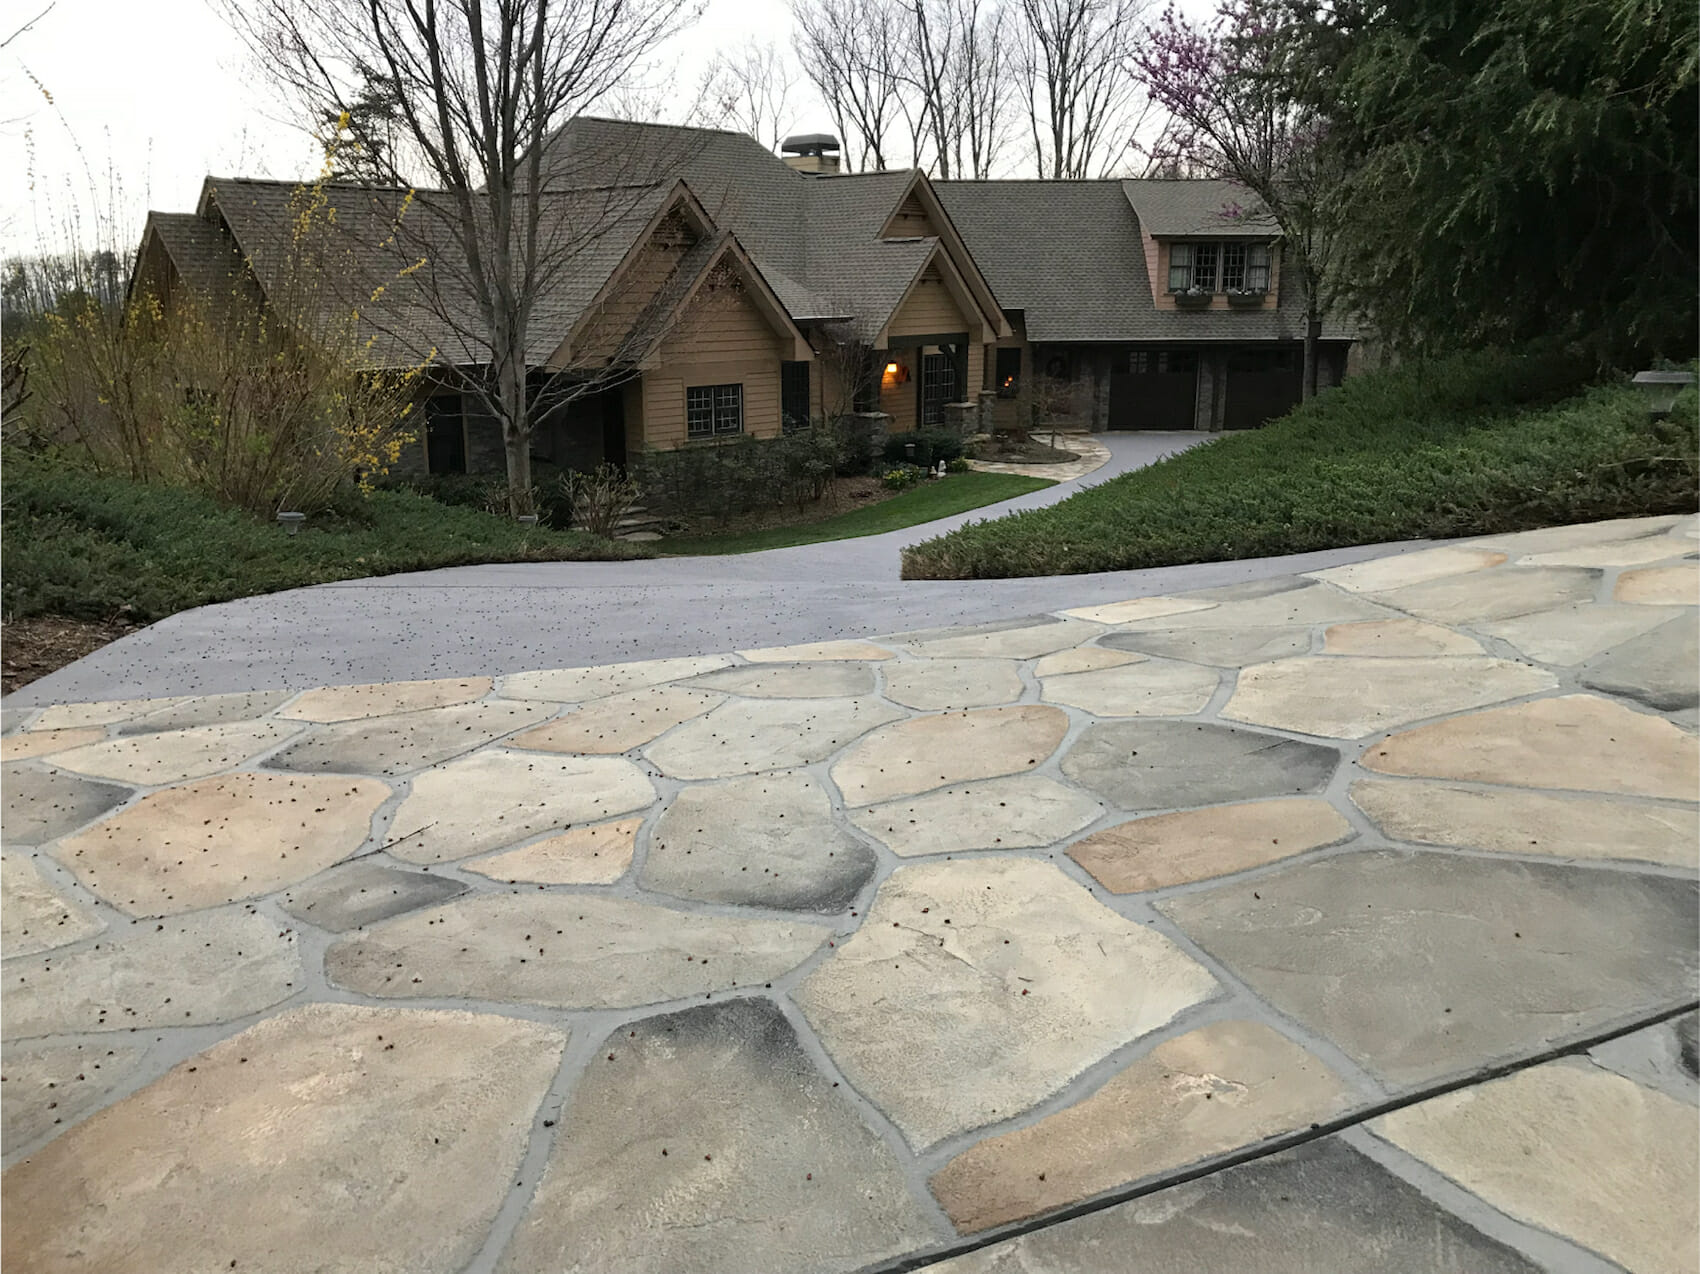 Gorgeous stone overlay with no cracks